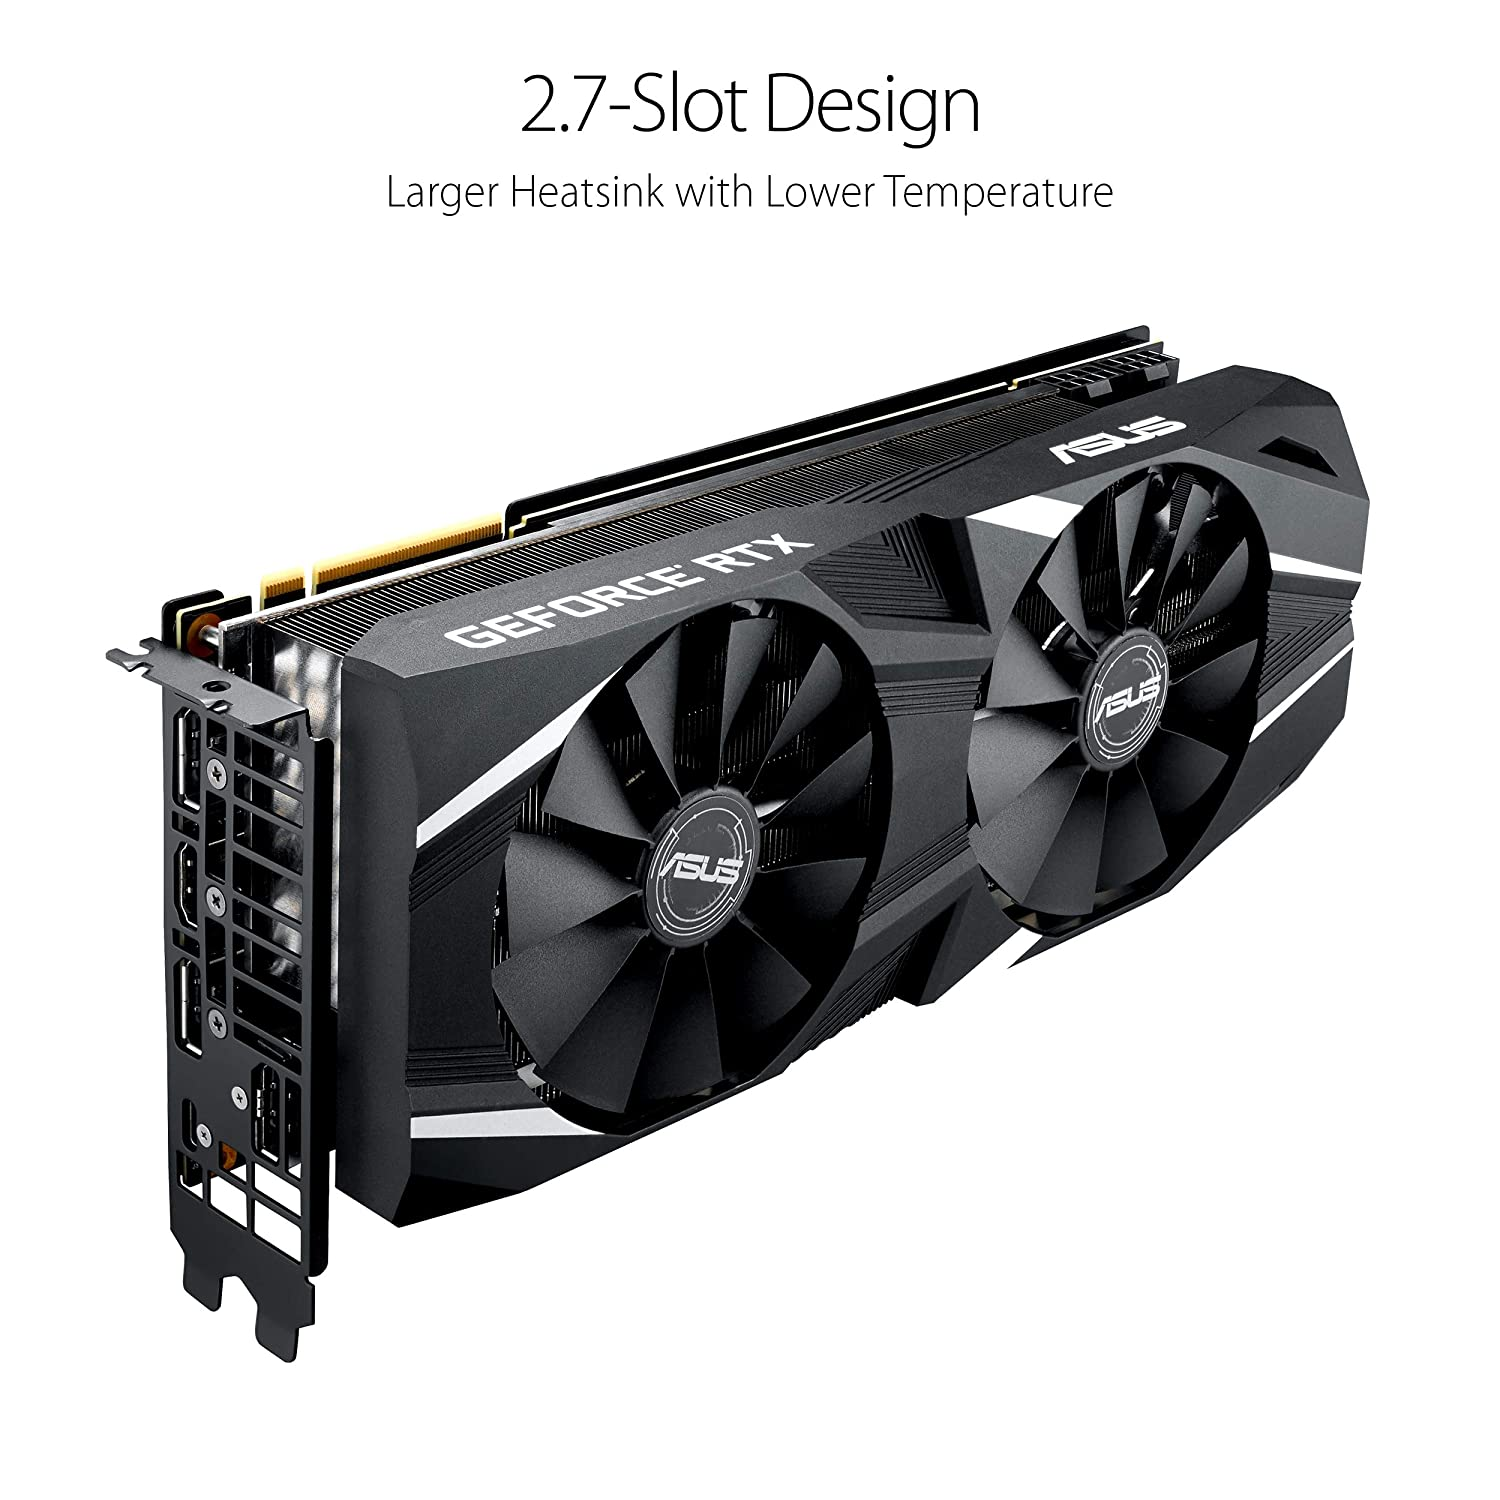 Amazon.com: ASUS GeForce RTX 2070 Advanced Overclocked 8G GDDR6 Dual-Fan Edition VR Ready HDMI DP USB Type-C Graphics Card (DUAL-RTX2070-A8G): Computers & ...